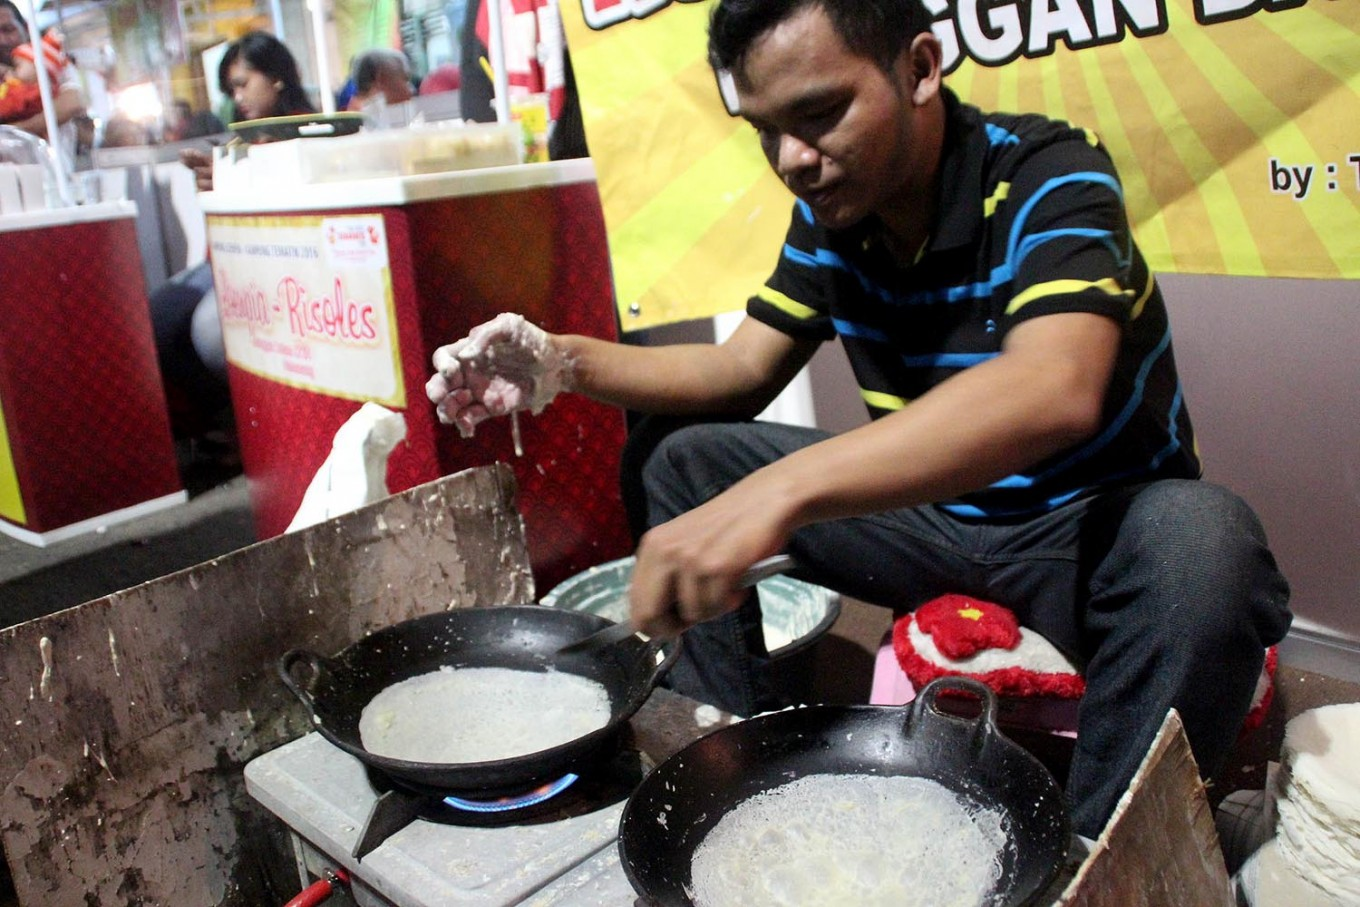 Takim demonstrates his skill in making lunpia (spring roll) skin at the night market. Semarang is famous for its lunpia. JP/Suherdjoko